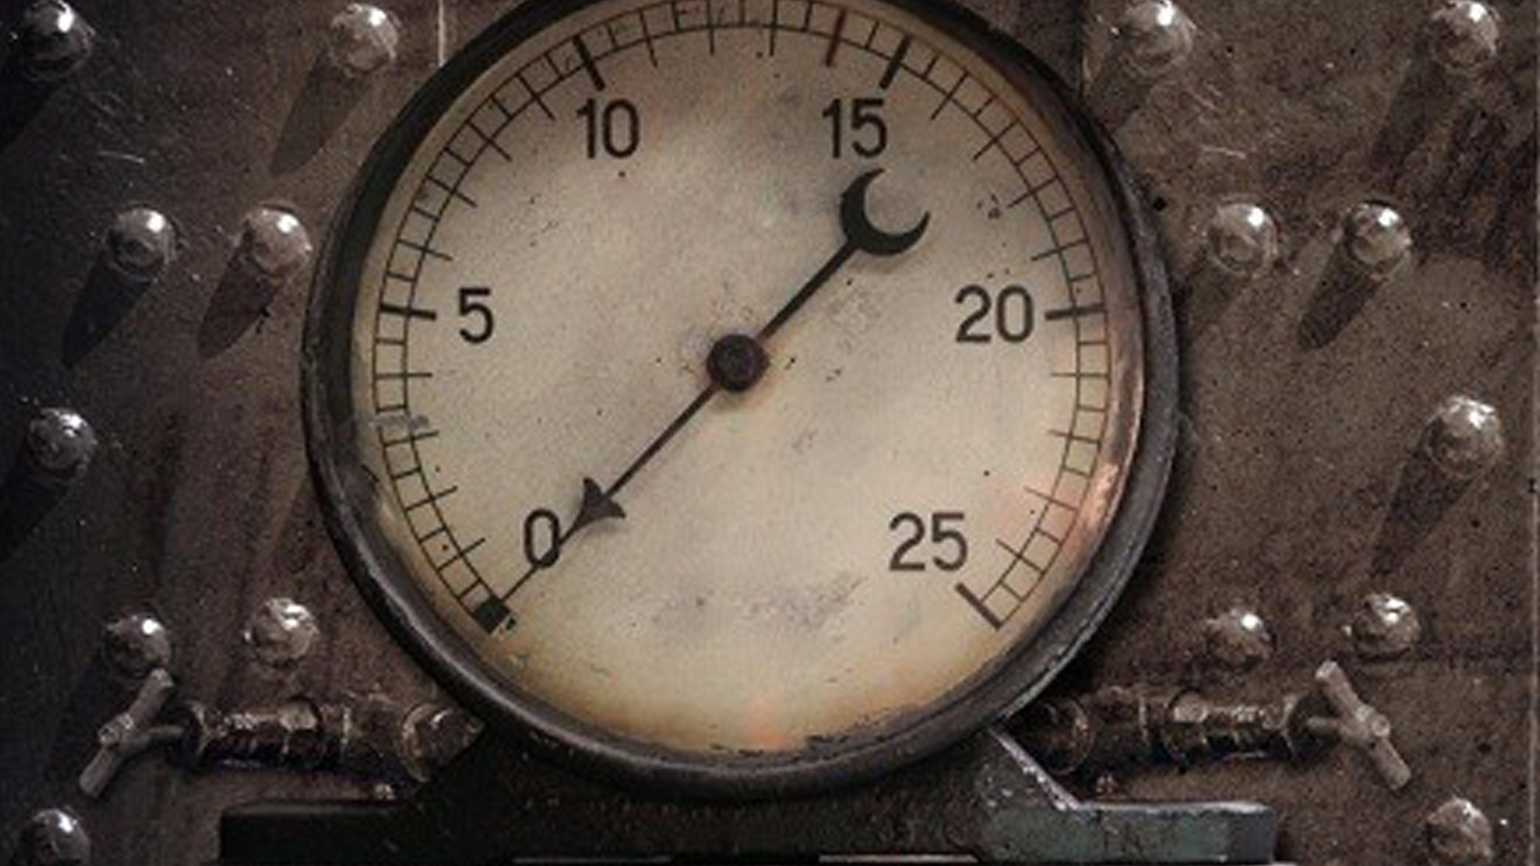 A pressure gauge on an old furnace